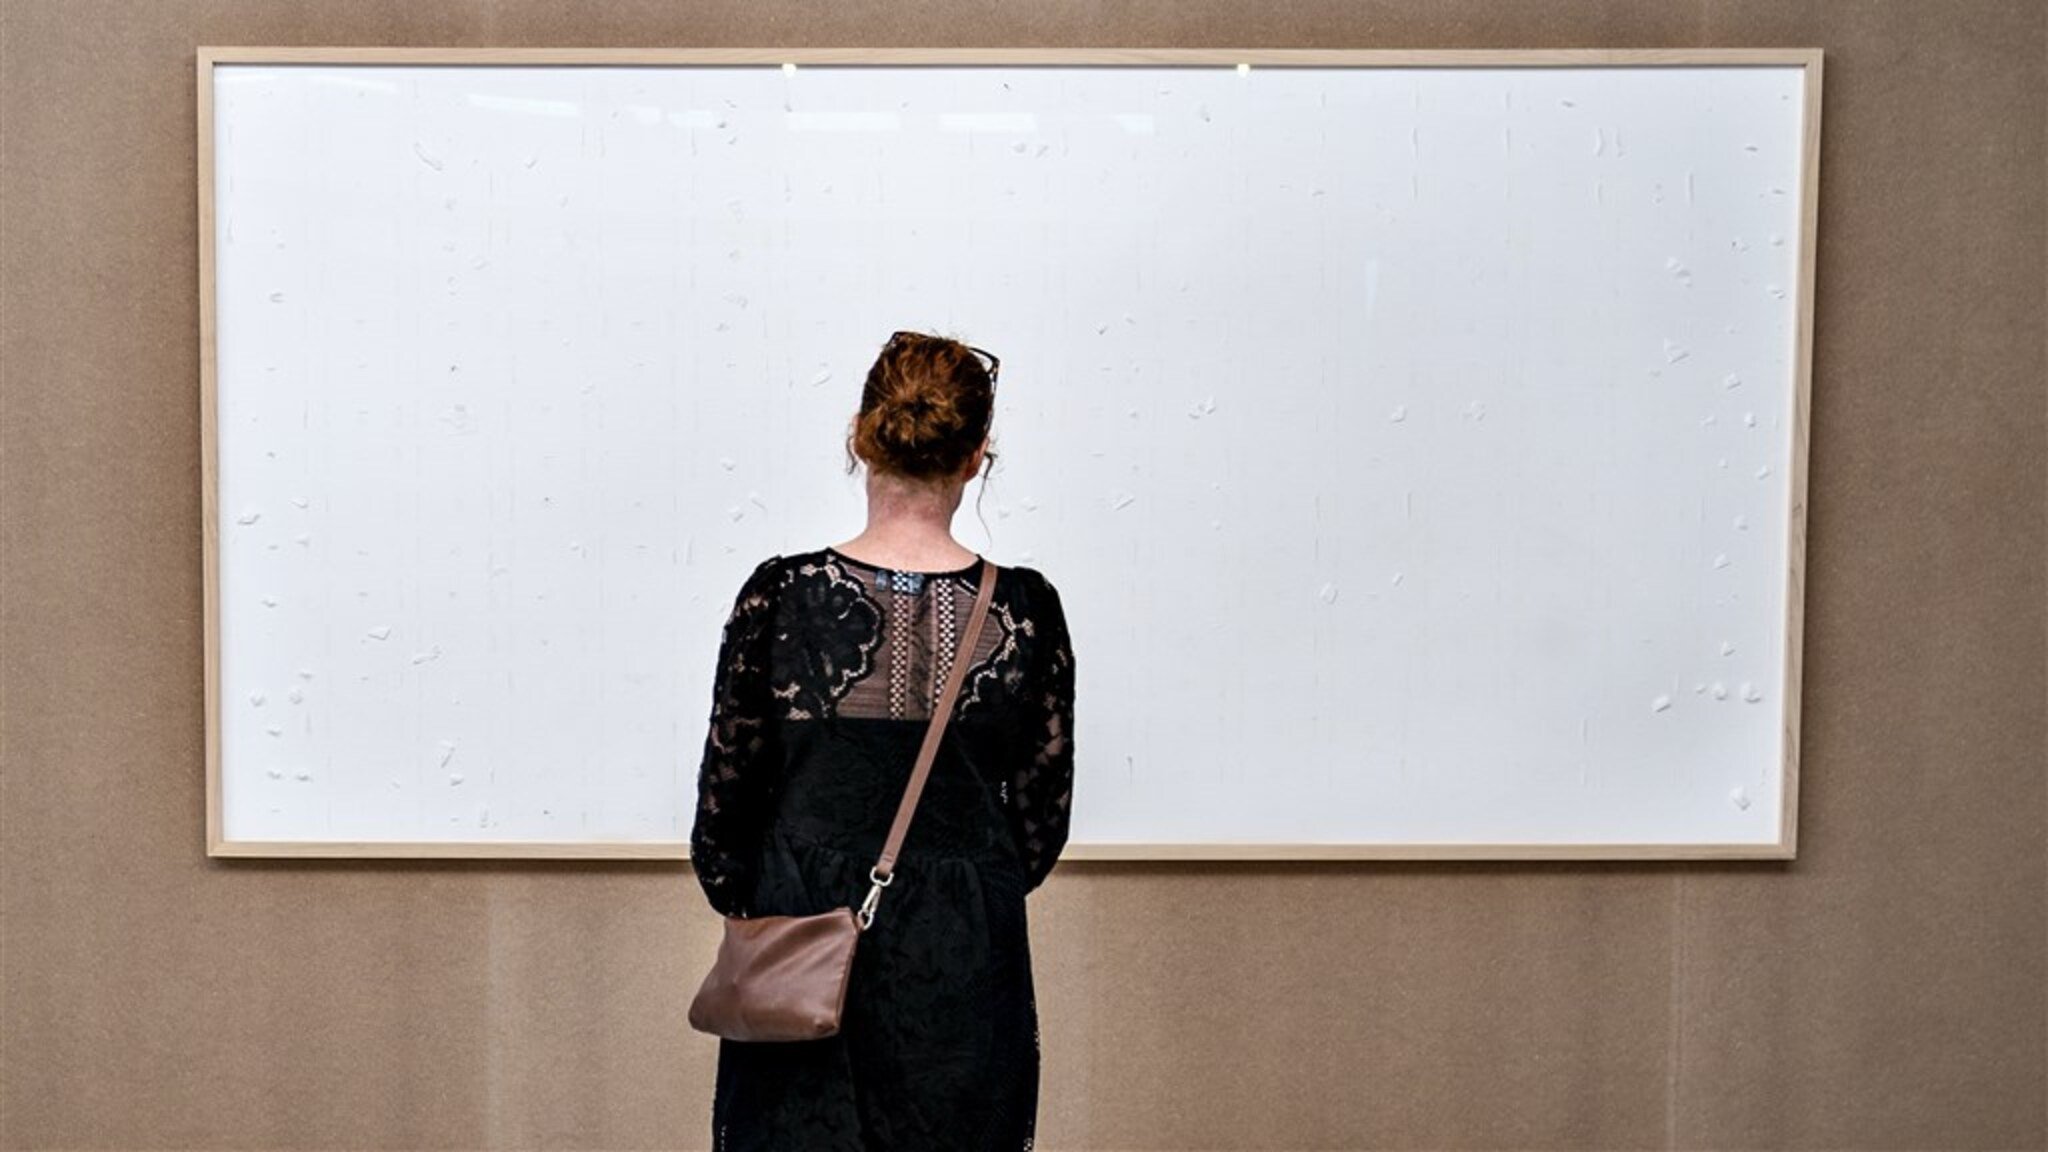 Danish artist hands over a blank canvas and takes 70,000 euros and calls it 'art'